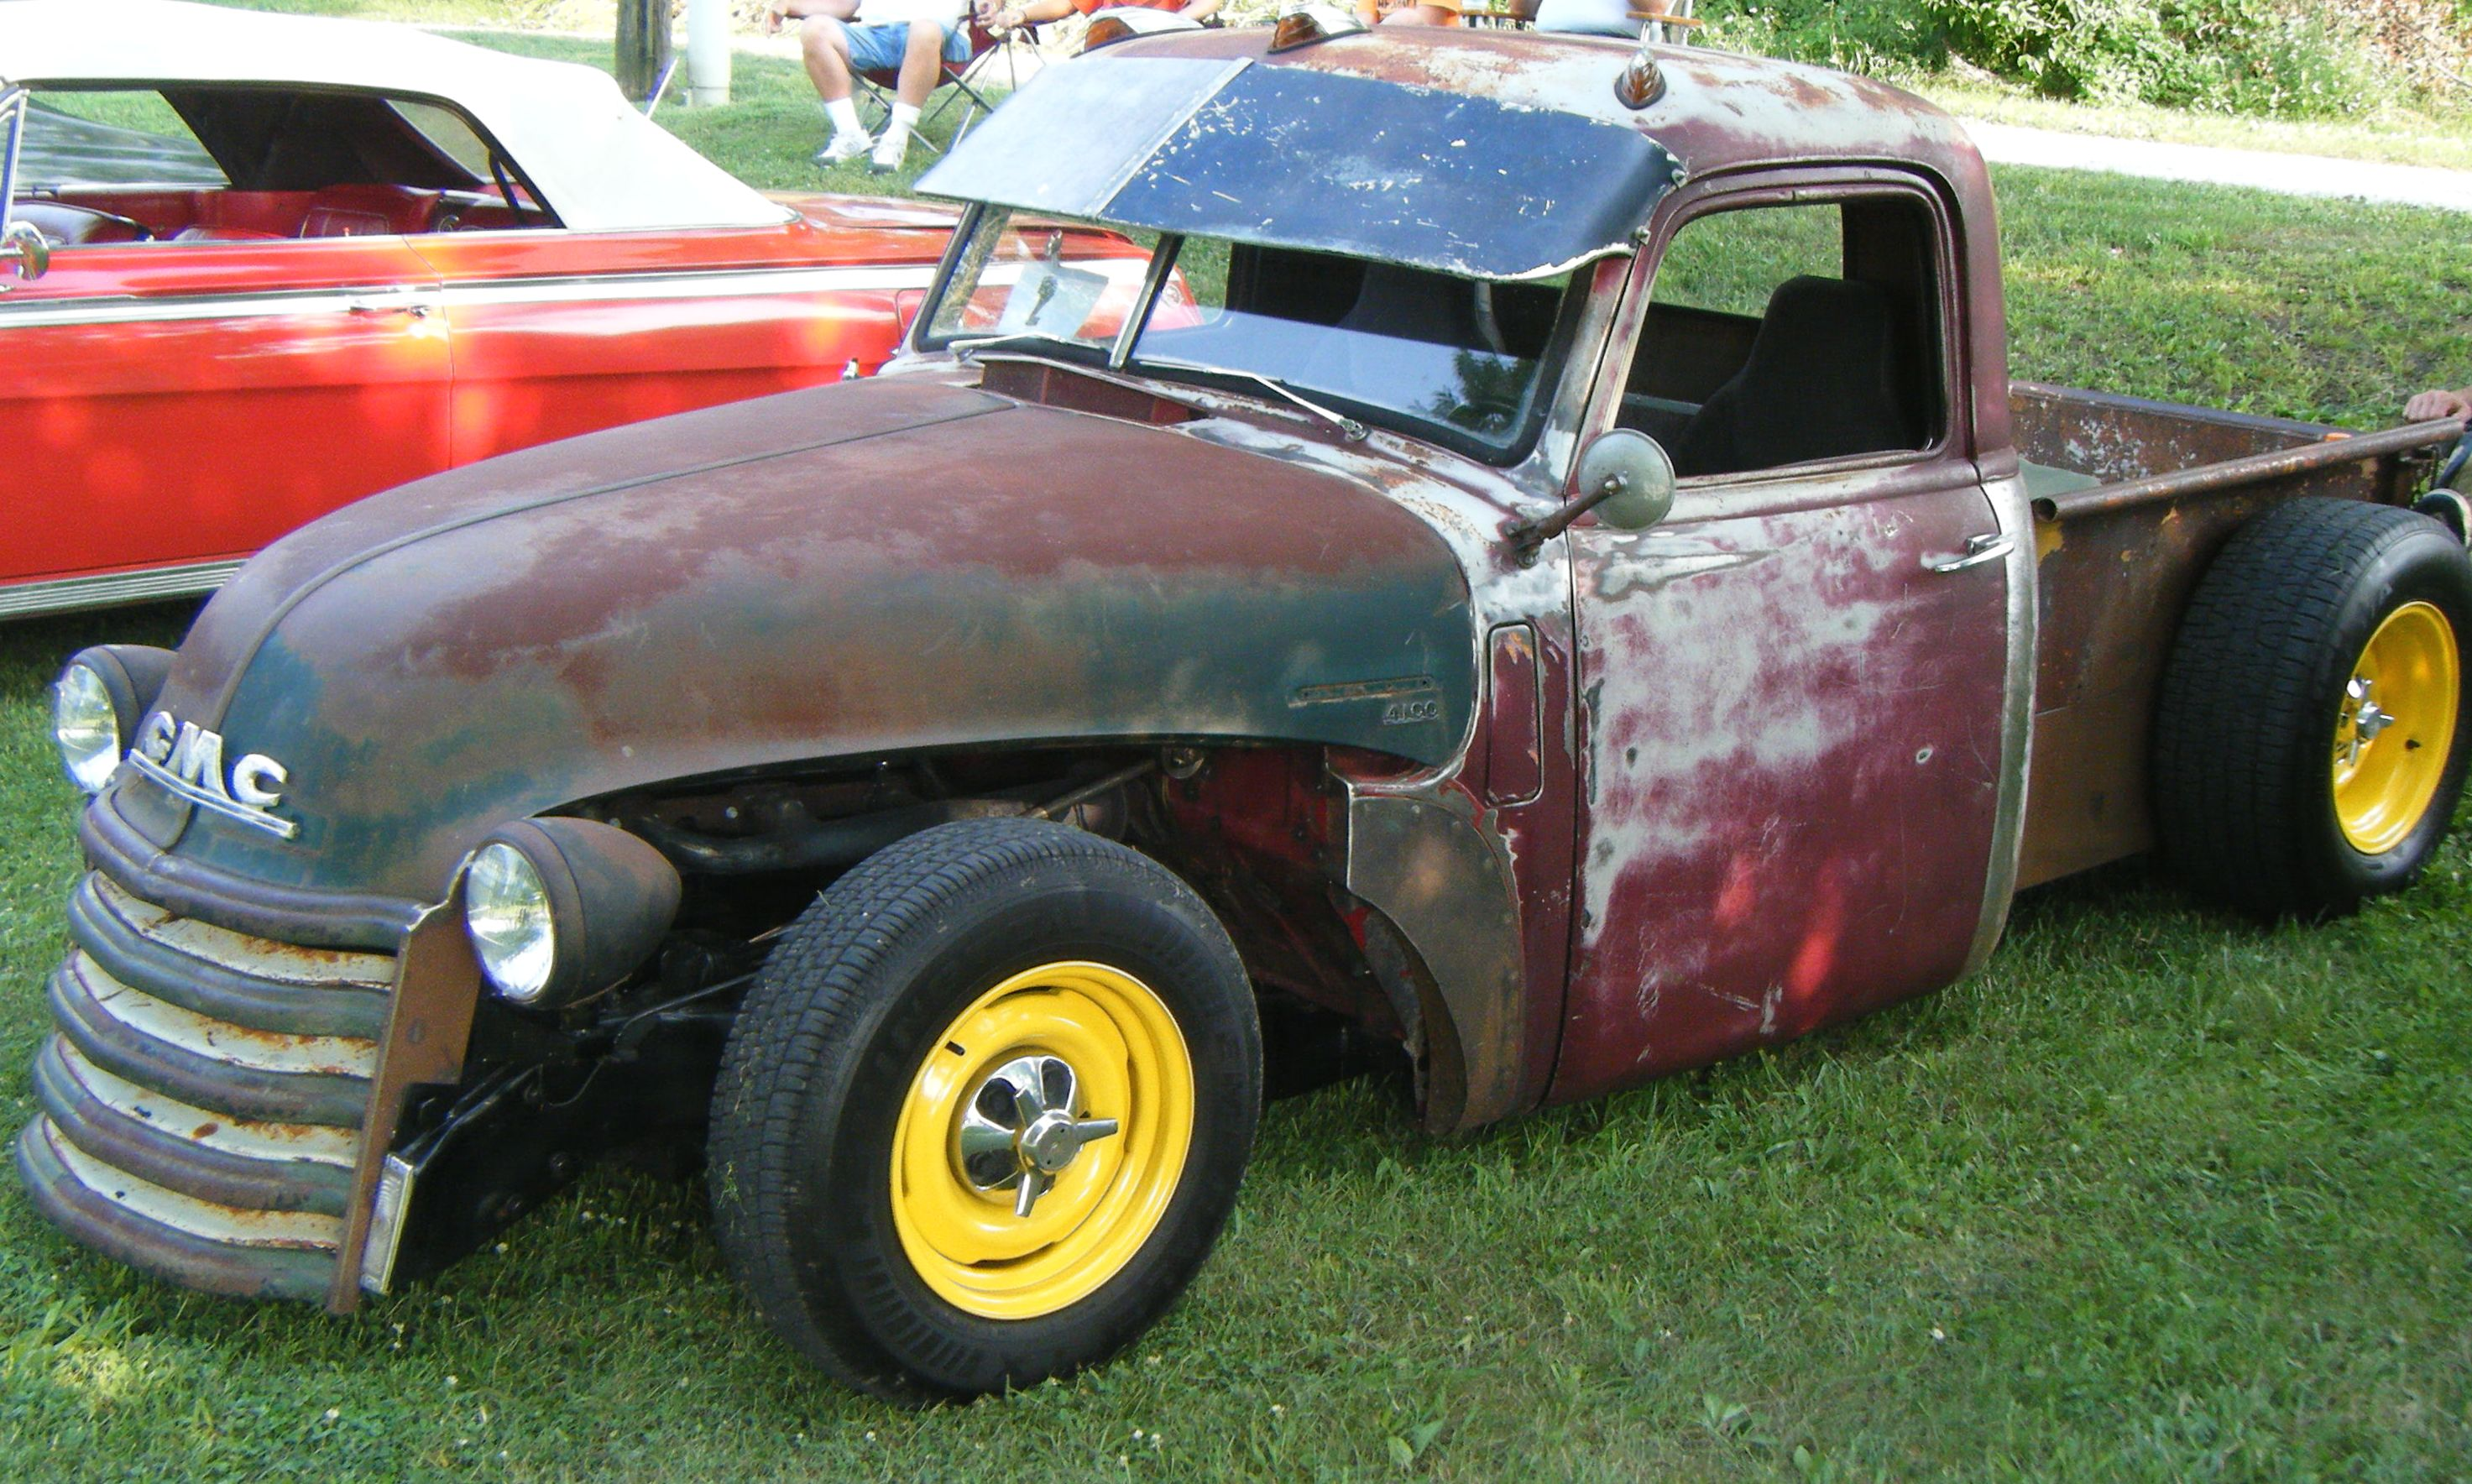 1955 Chevy Truck Rat Rod http://super-cars.net/1955-chevrolet-rat-rod-pickup-pick-up-truck-used-black/tedvernon.com*itemimages*55_Chevy_Rat_Rod-006.jpg/